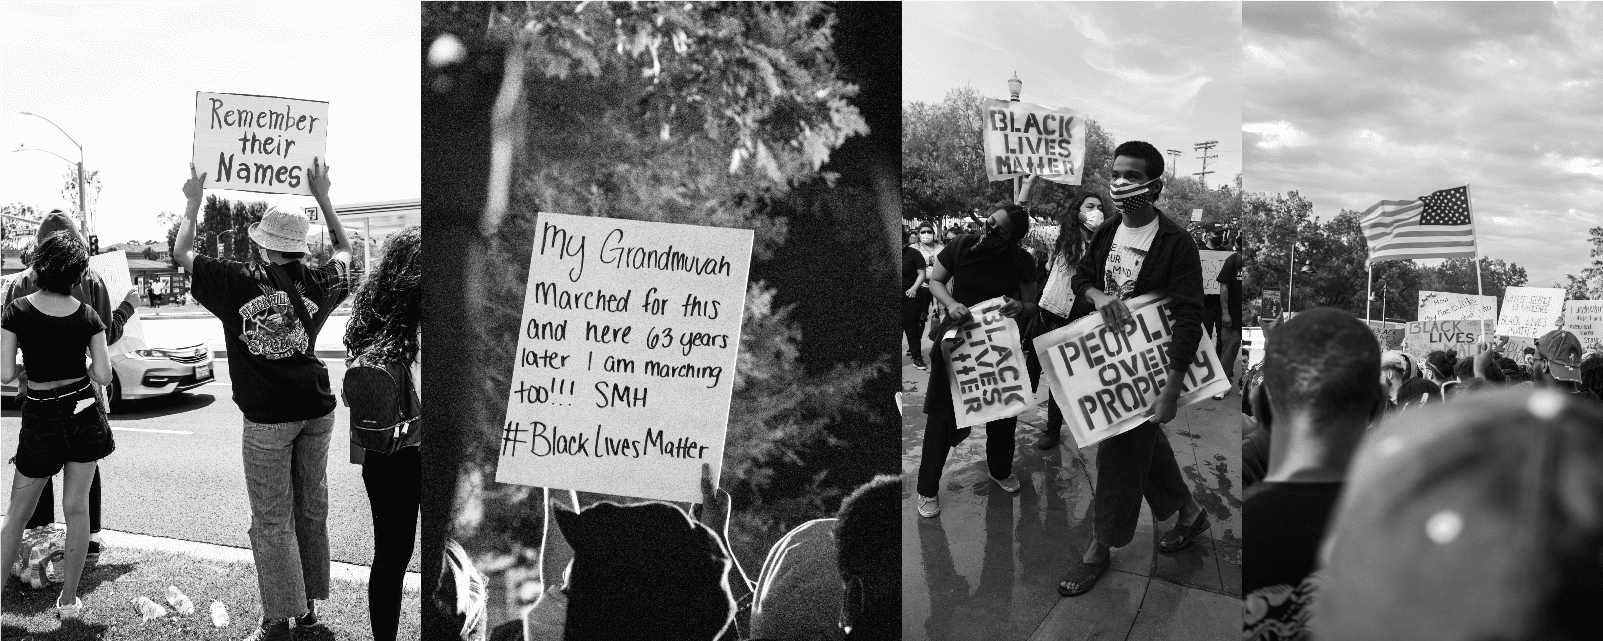 black & white collage of people protesting